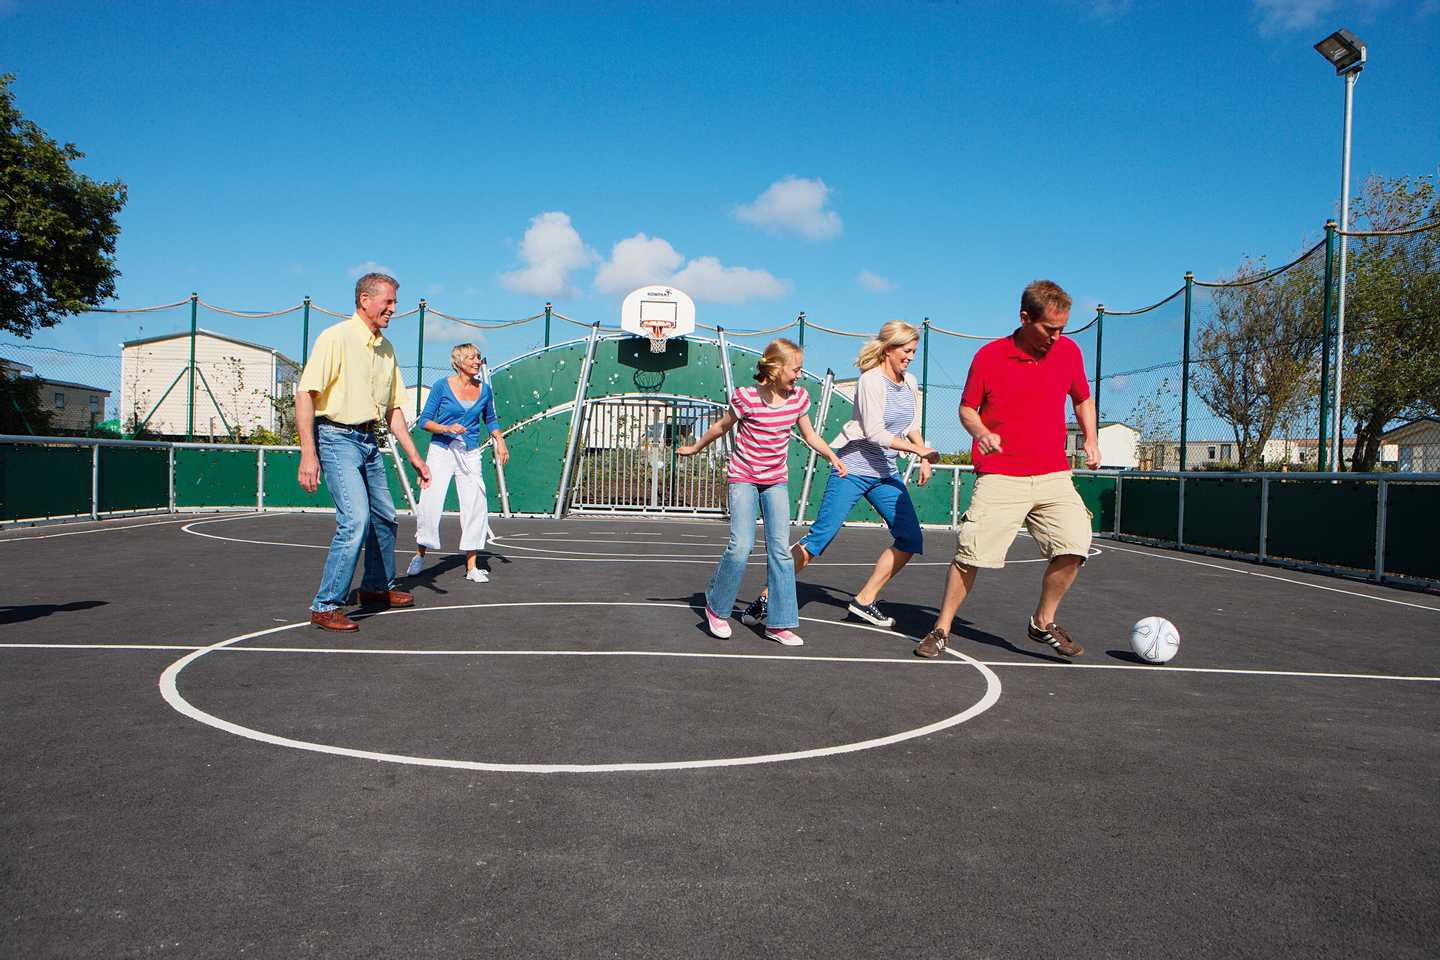 Guests playing football on the sports court